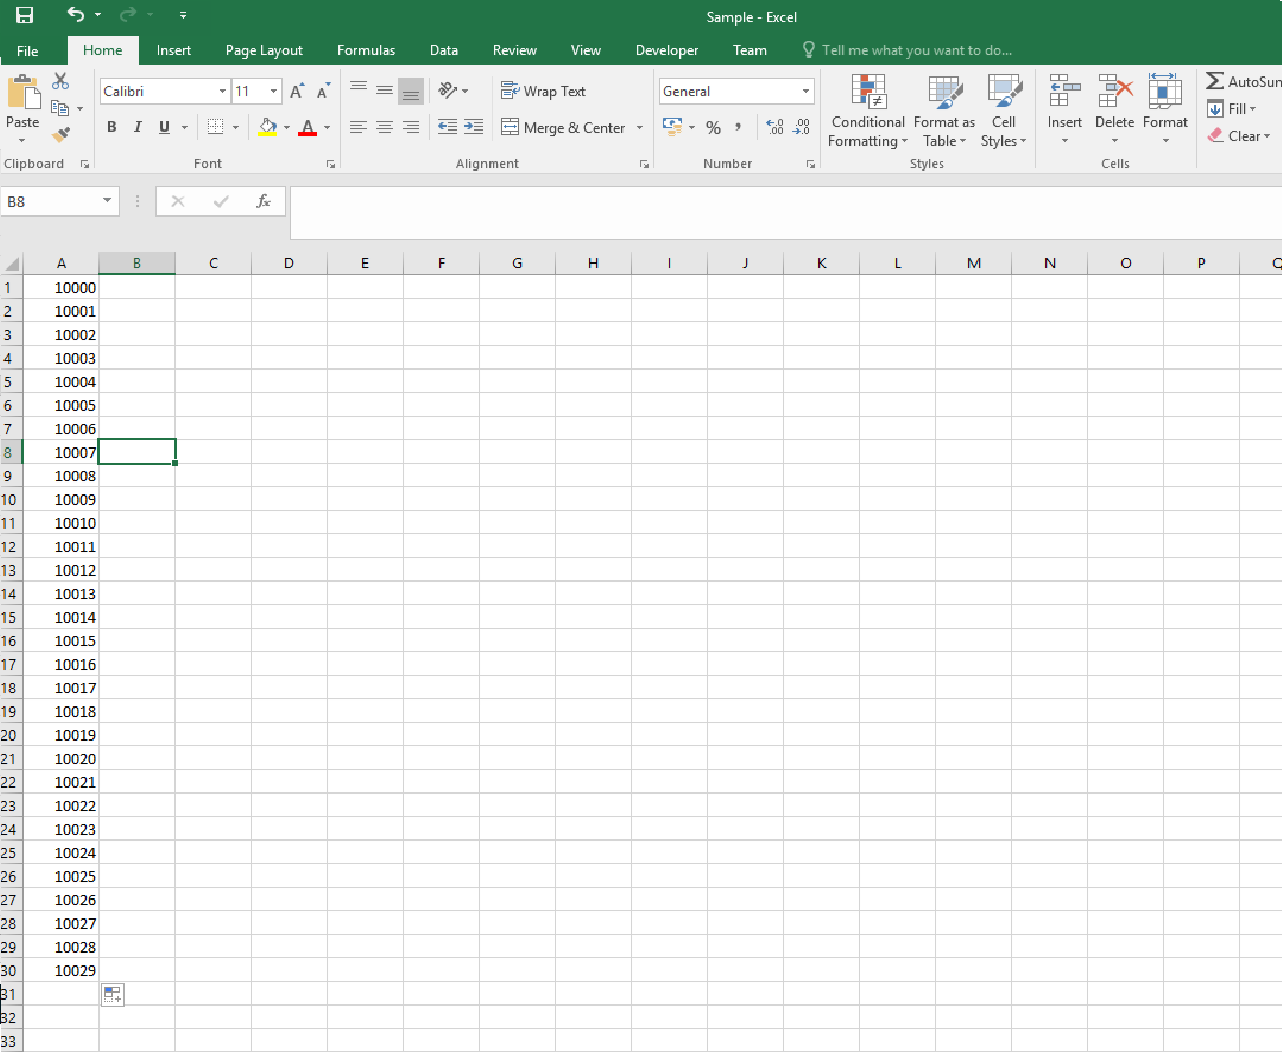 Madison : Python code to convert excel to html